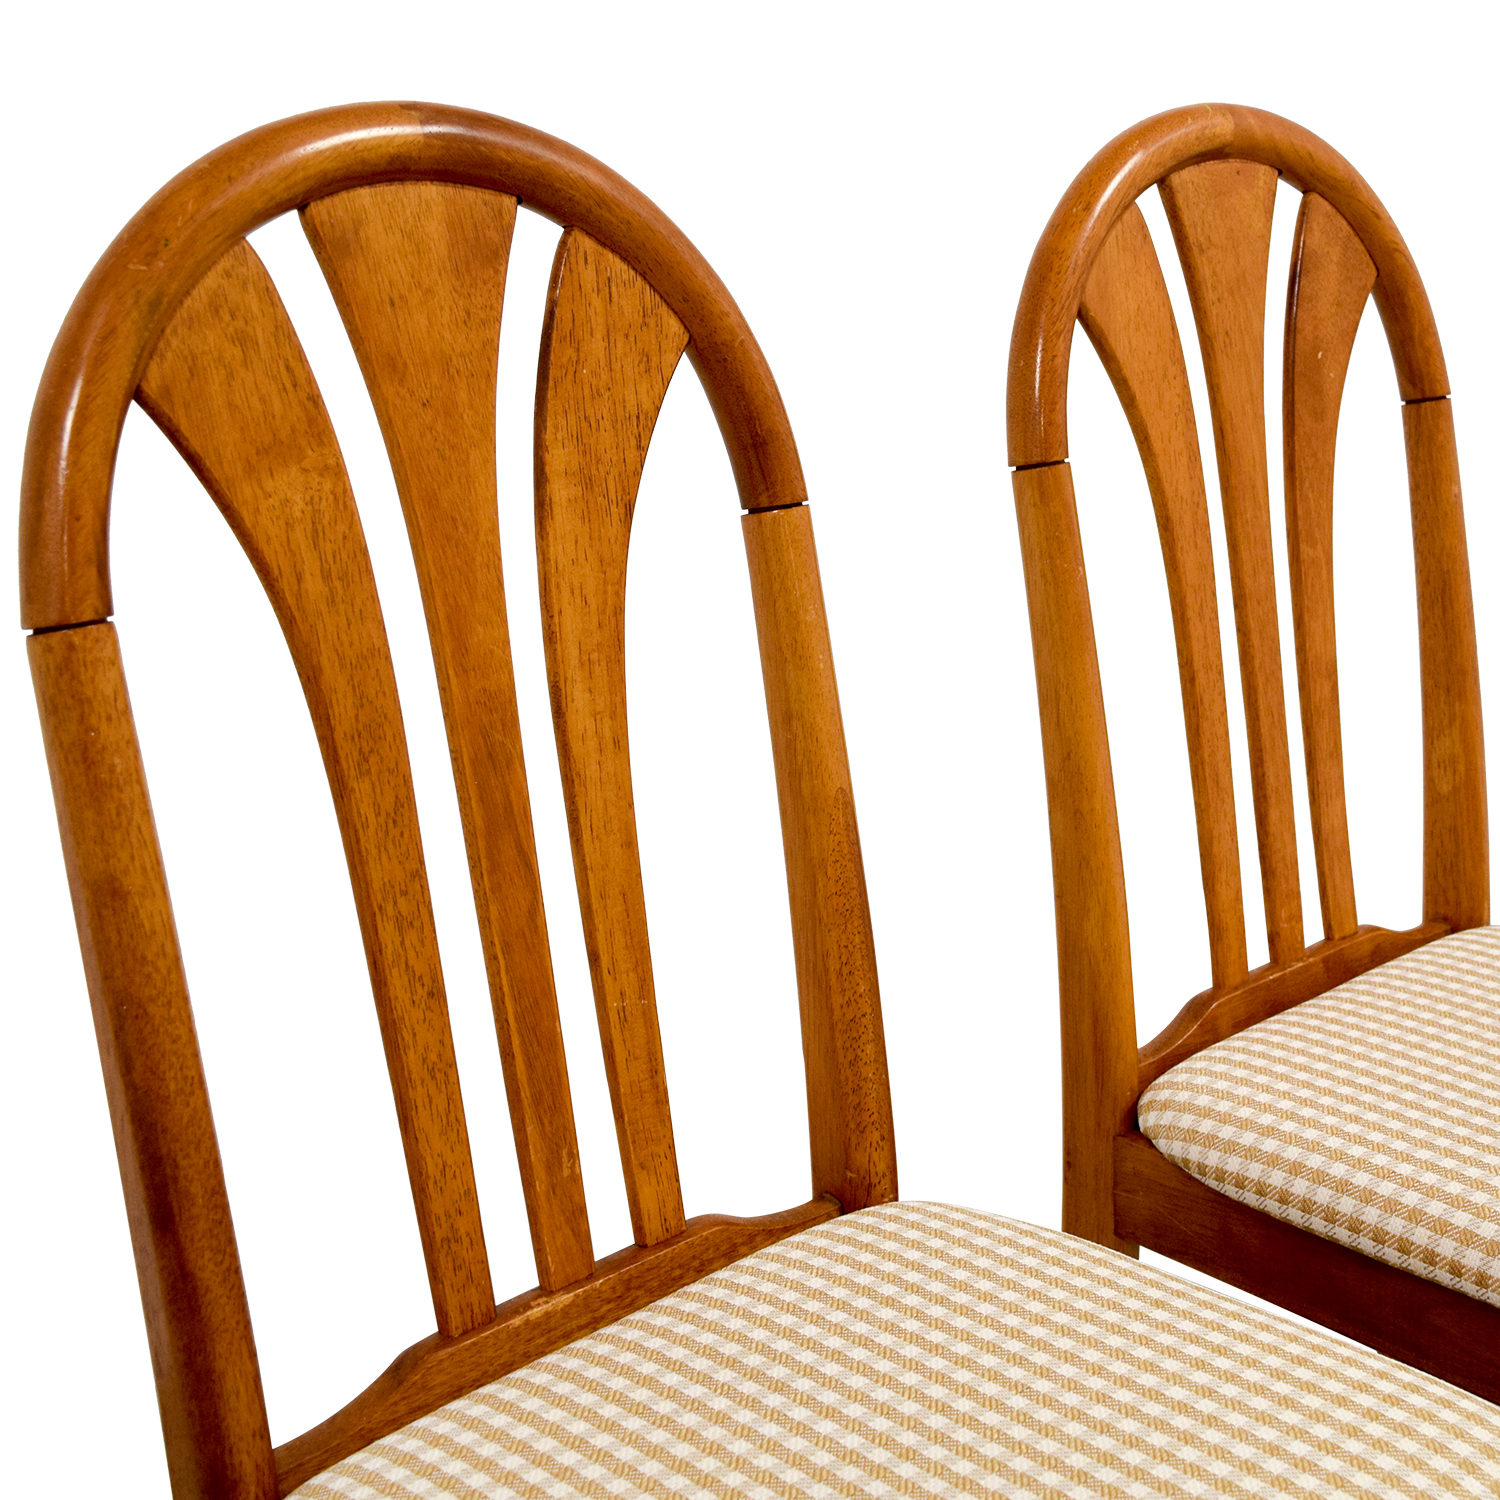 Gingham Upholstered Wood Chairs Dining Chairs